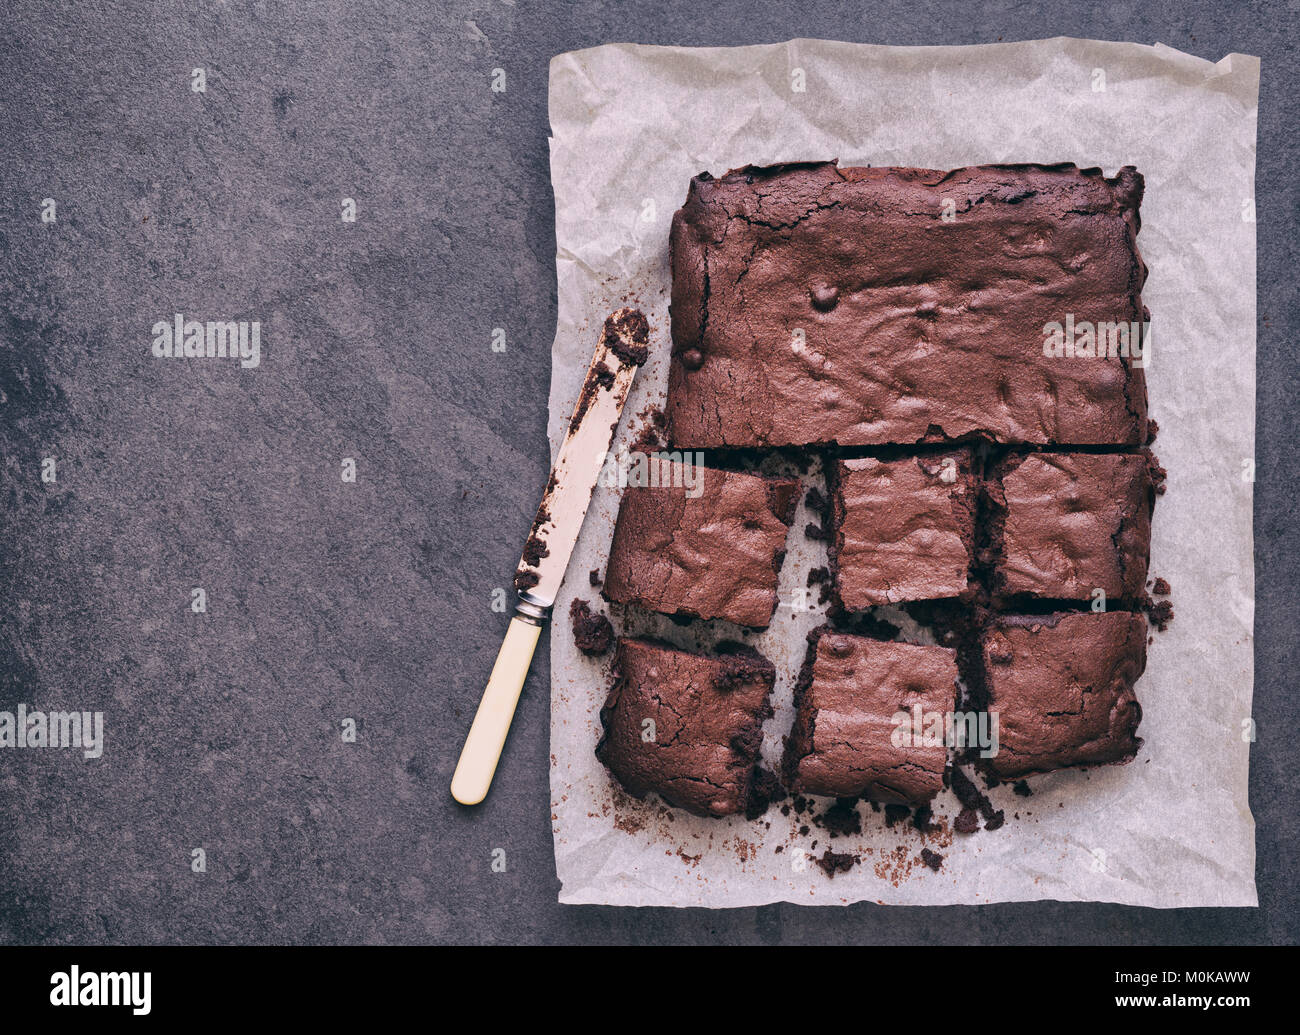 Homemade Chocolate Brownies on a slate background - Stock Image